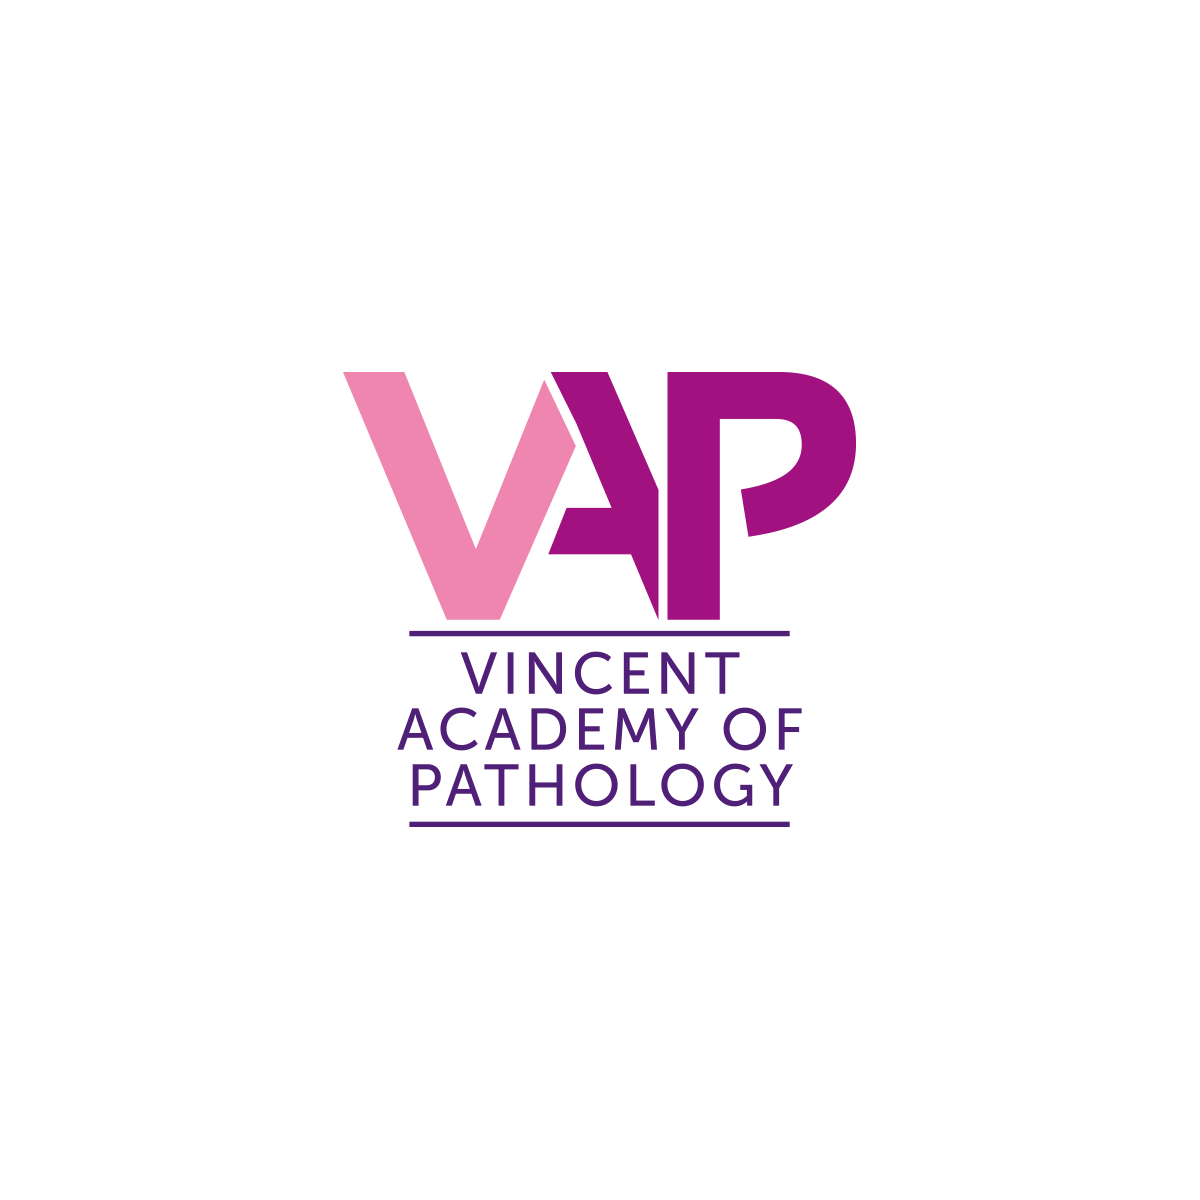 Vincent Academy of Pathology   Education, consultation, research